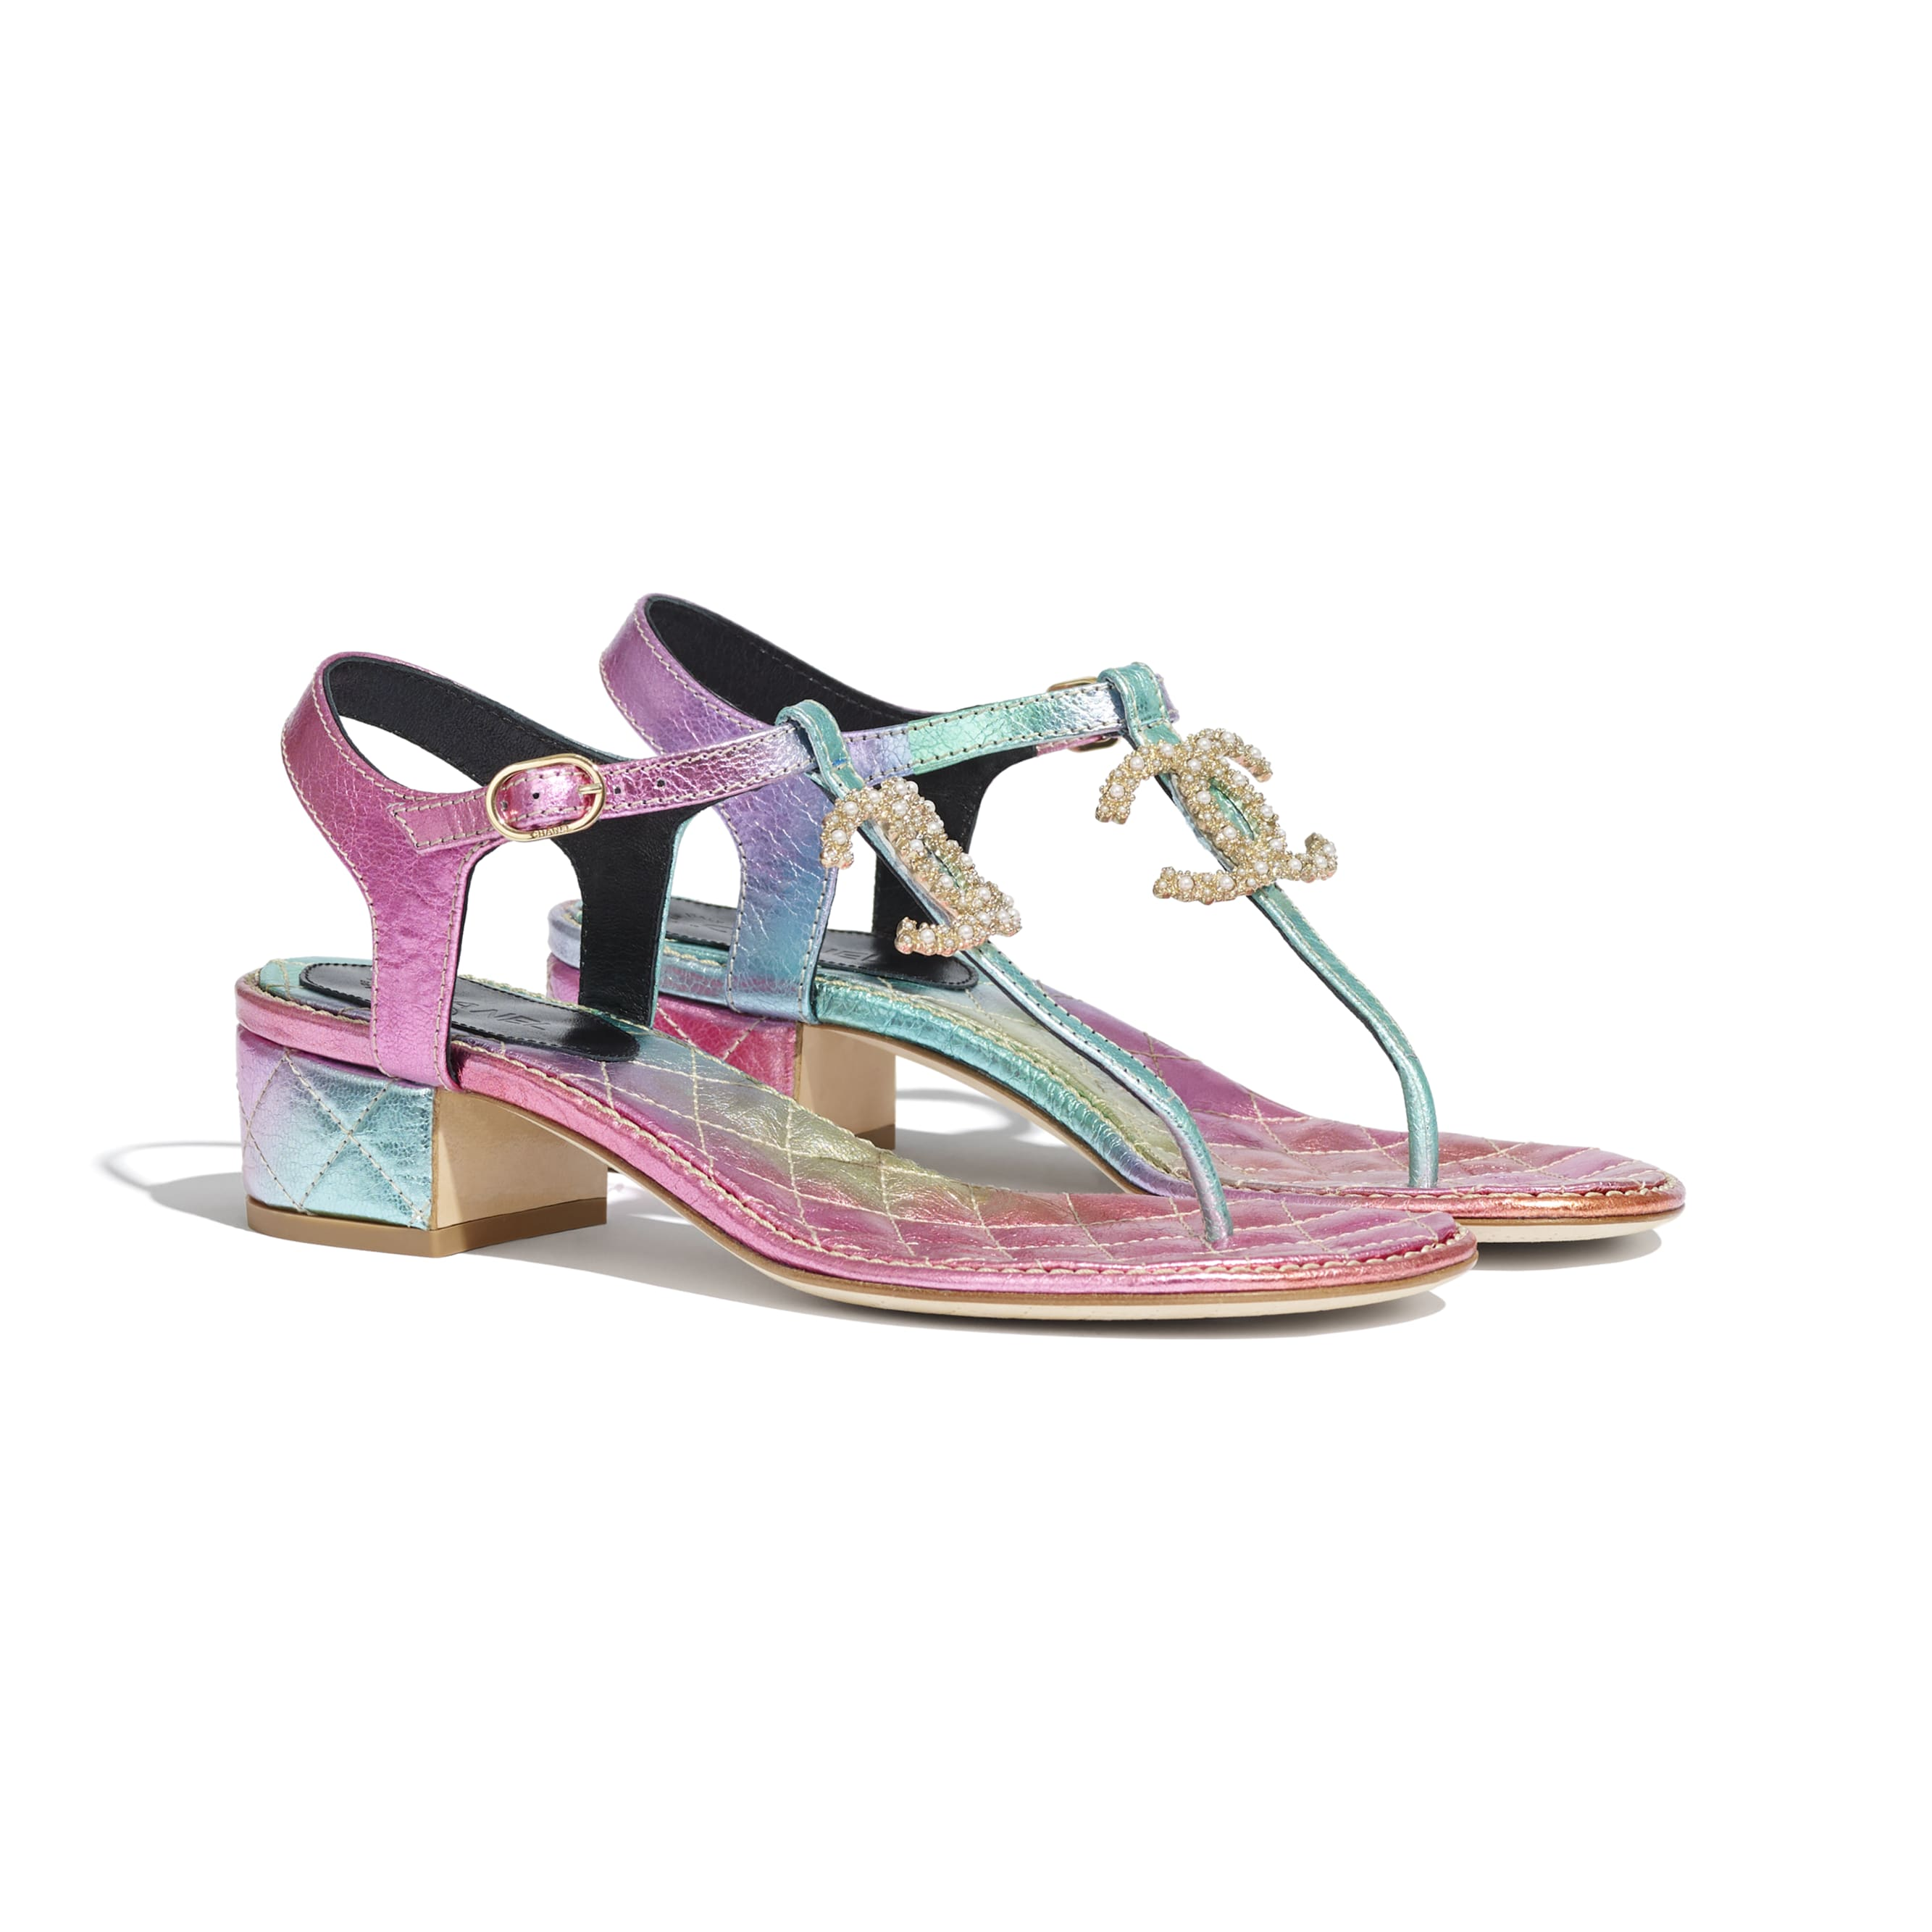 Sandals - Multicolour - Fantasy Goatskin - CHANEL - Alternative view - see standard sized version